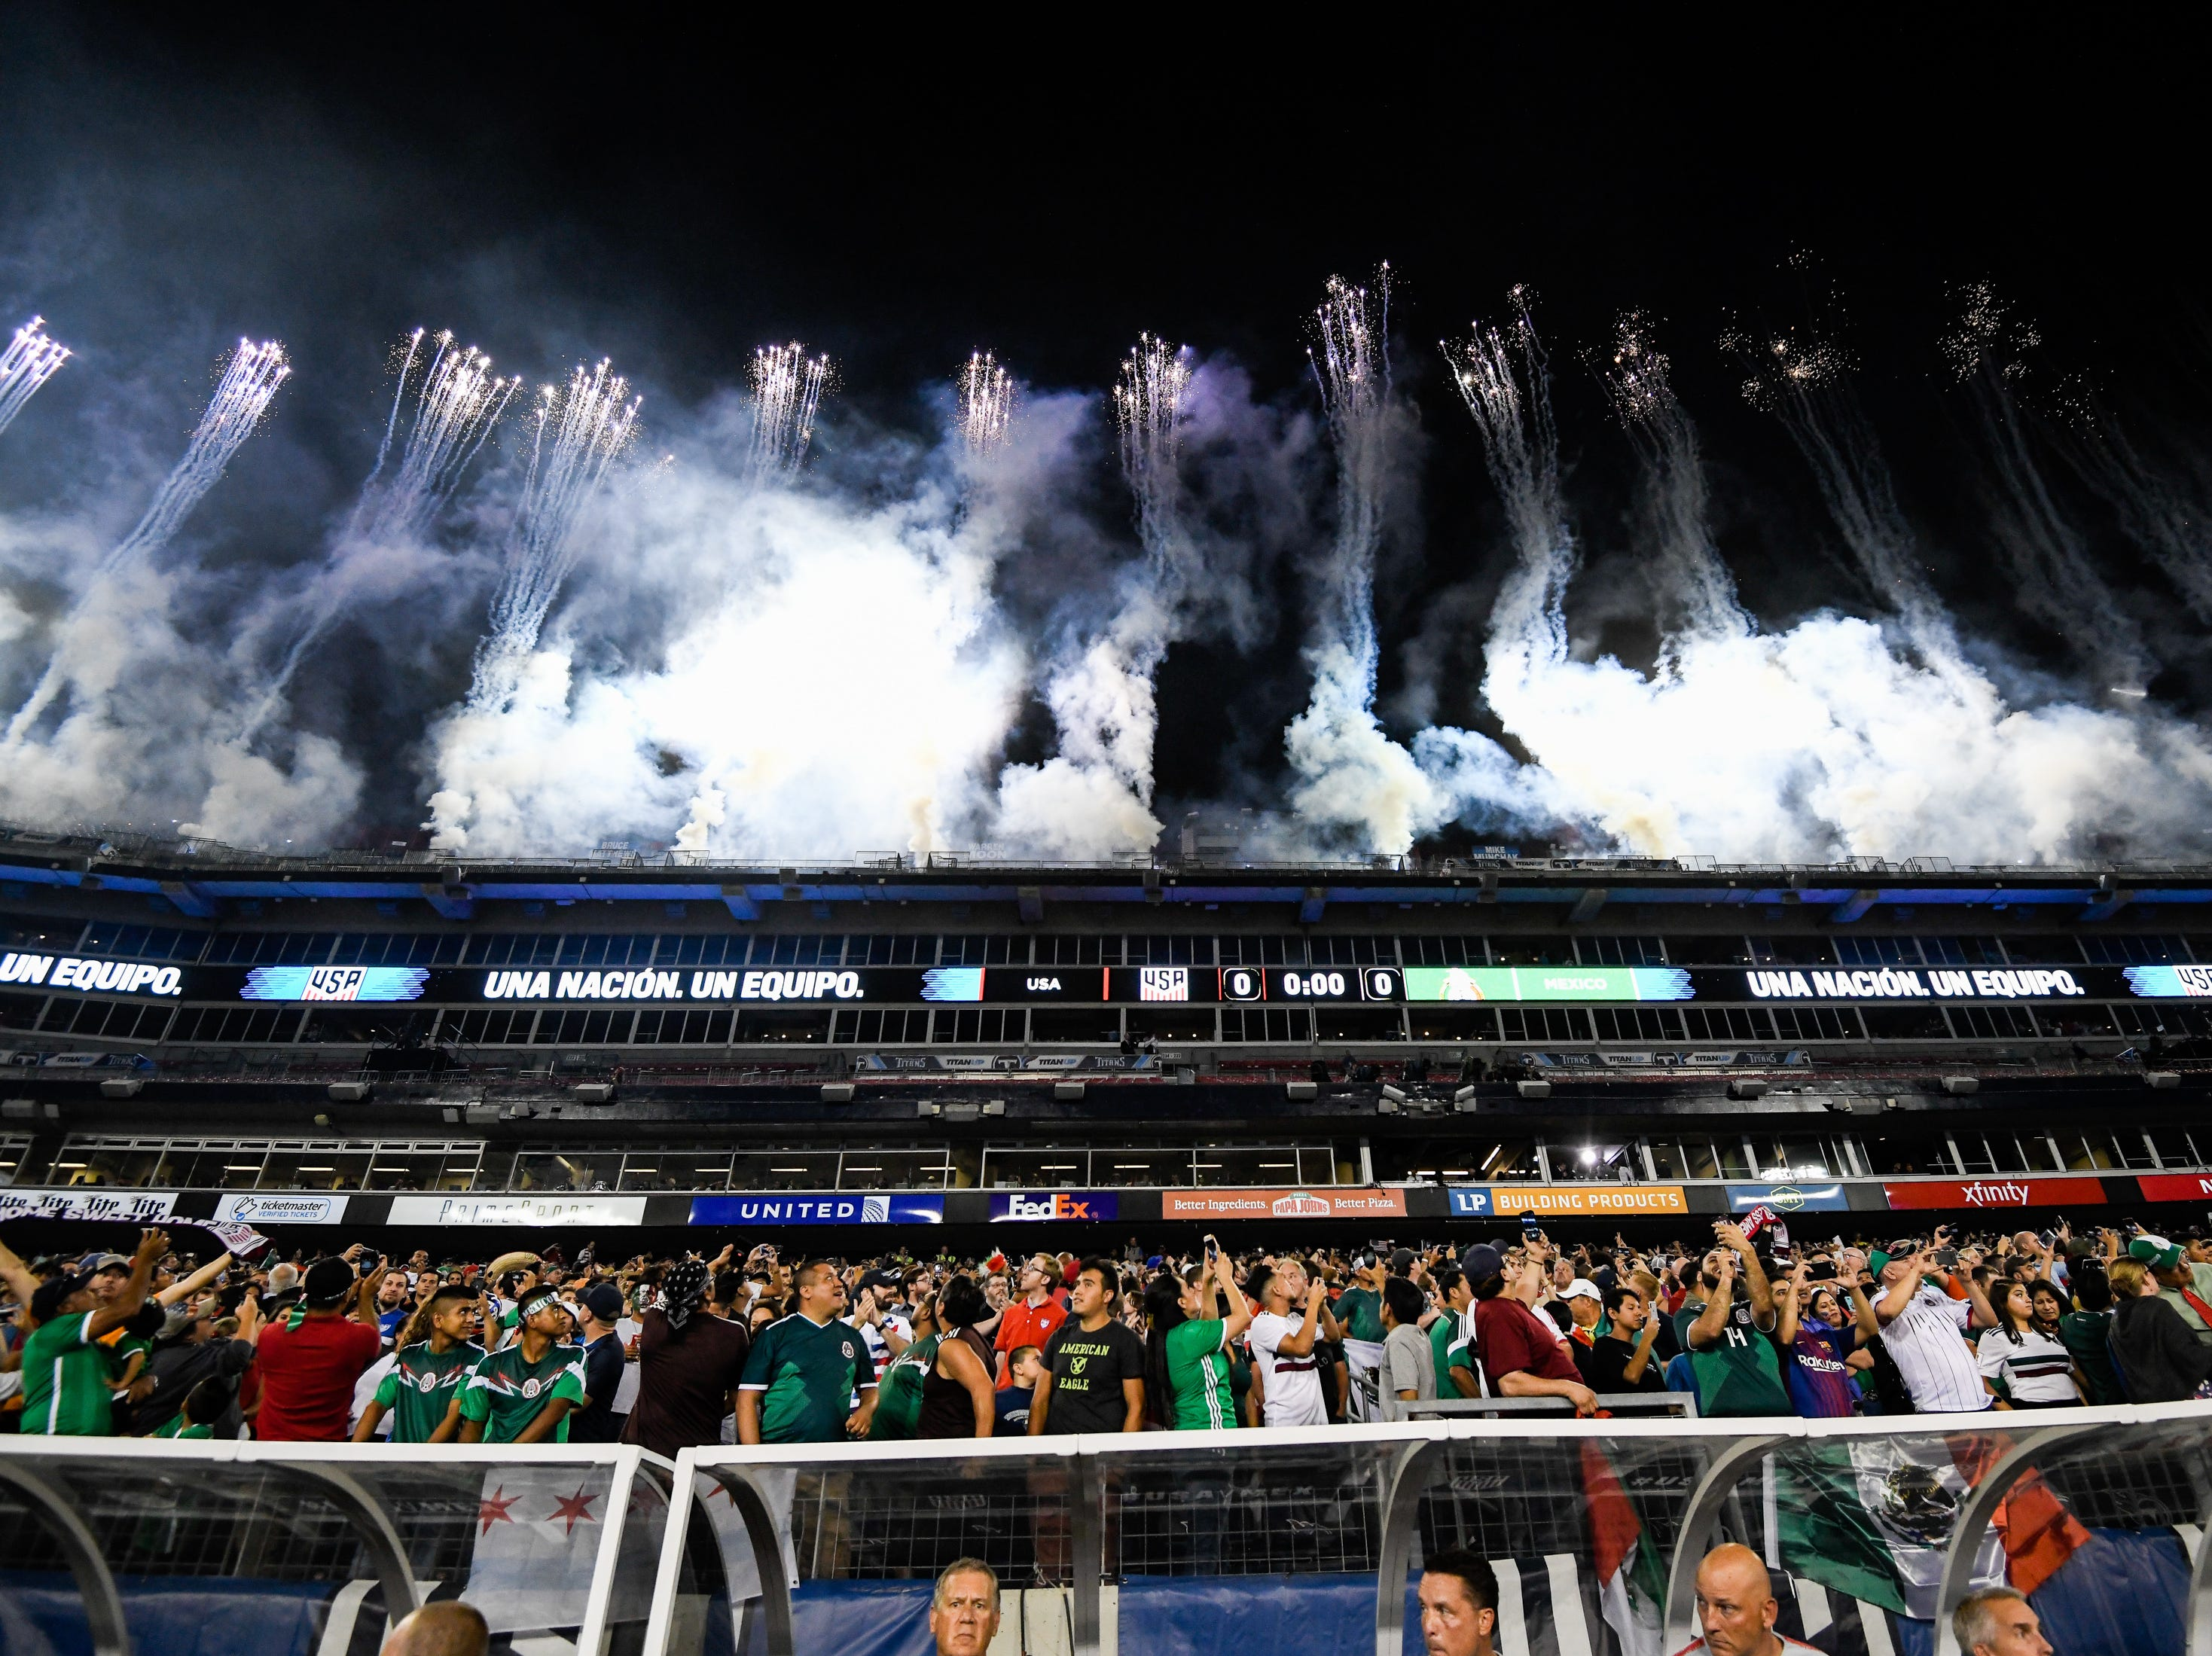 Fireworks launch behind the fans before the game between USA and Mexico at Nissan Stadium in Nashville, Tenn., Tuesday, Sept. 11, 2018.